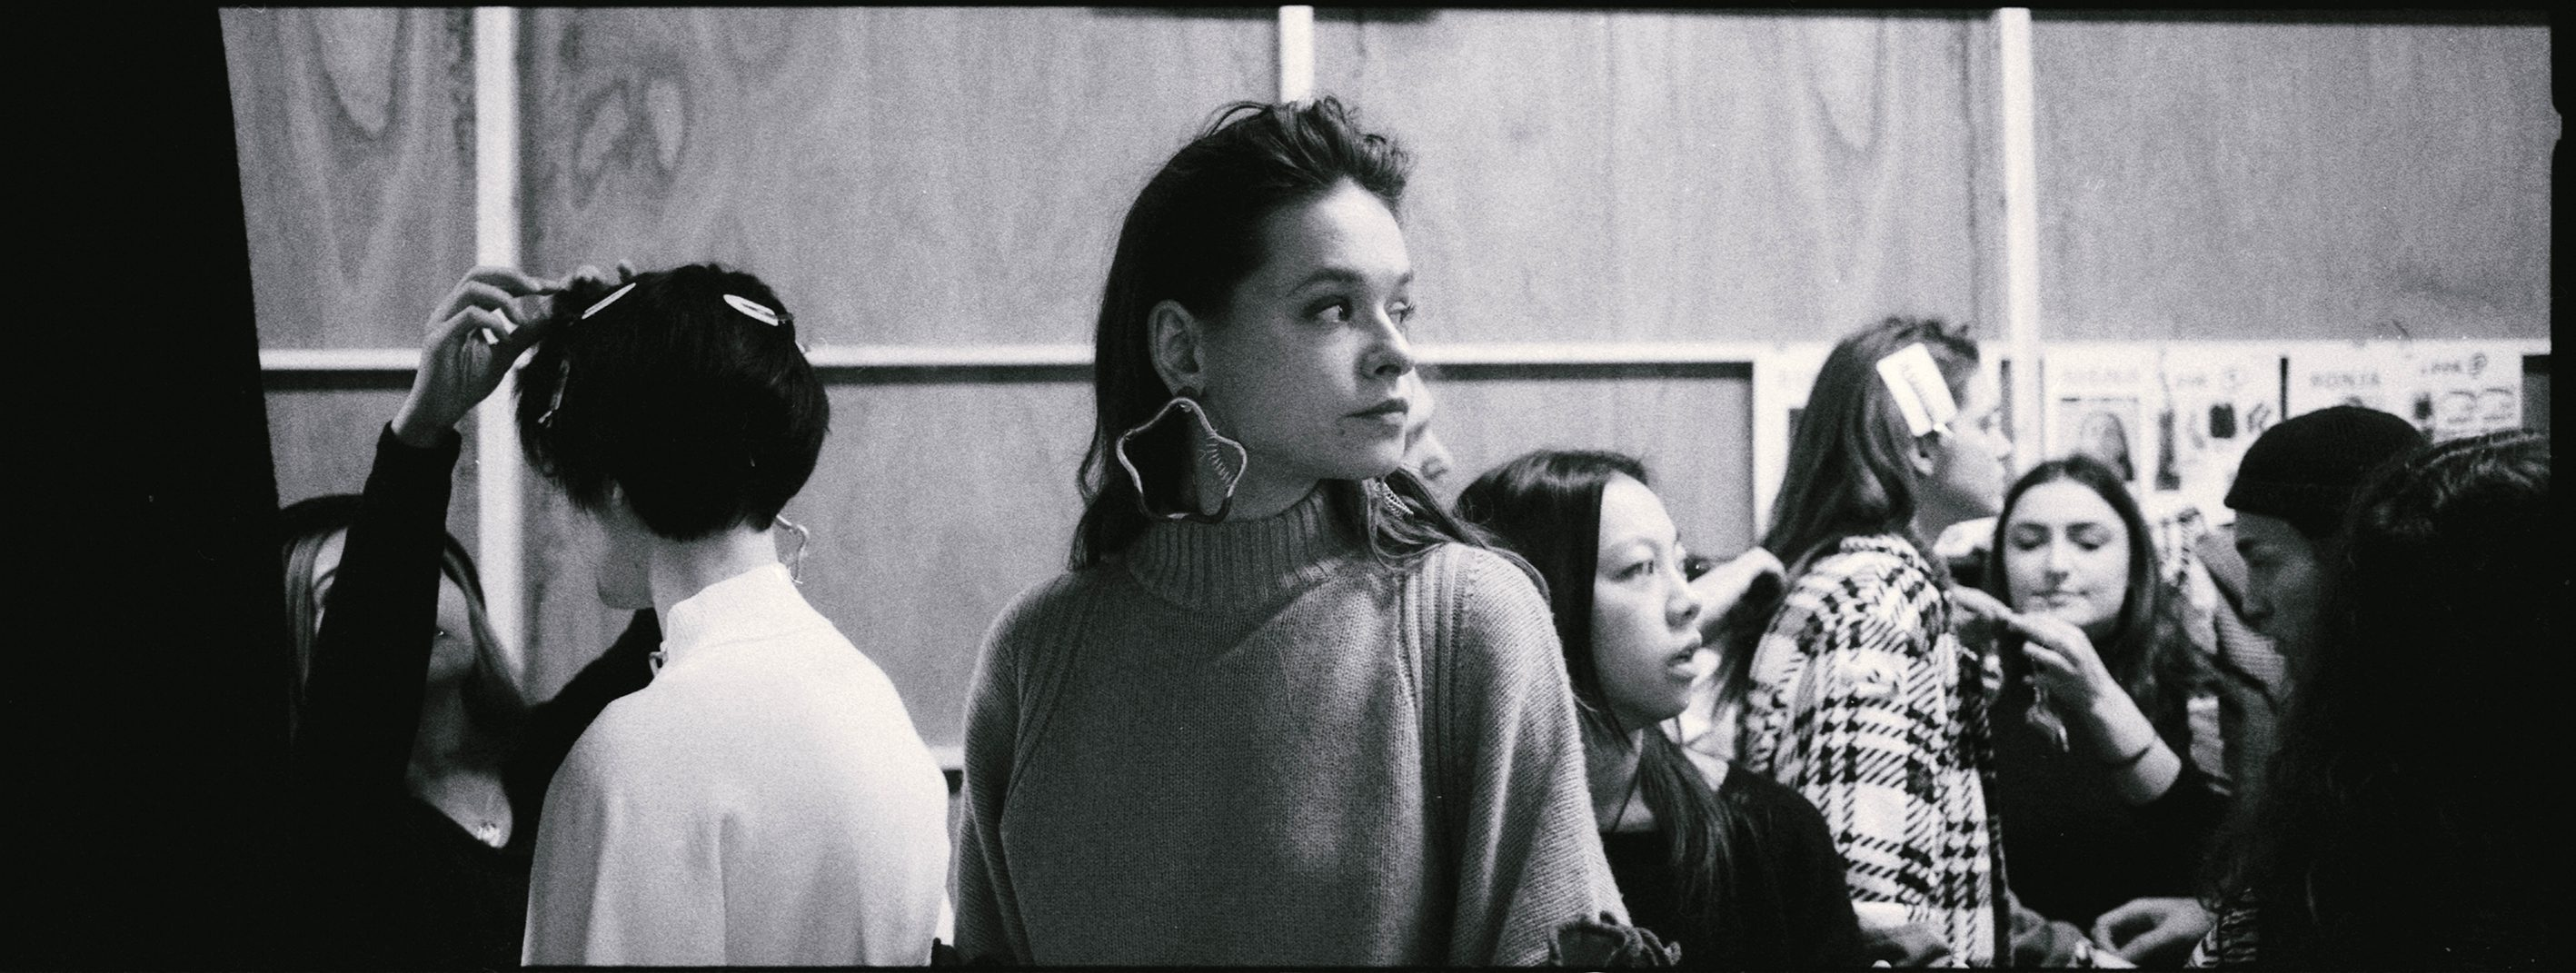 Backstage image from London Fashion week shot by Simon King on black and white ilford DELTA 3200 film